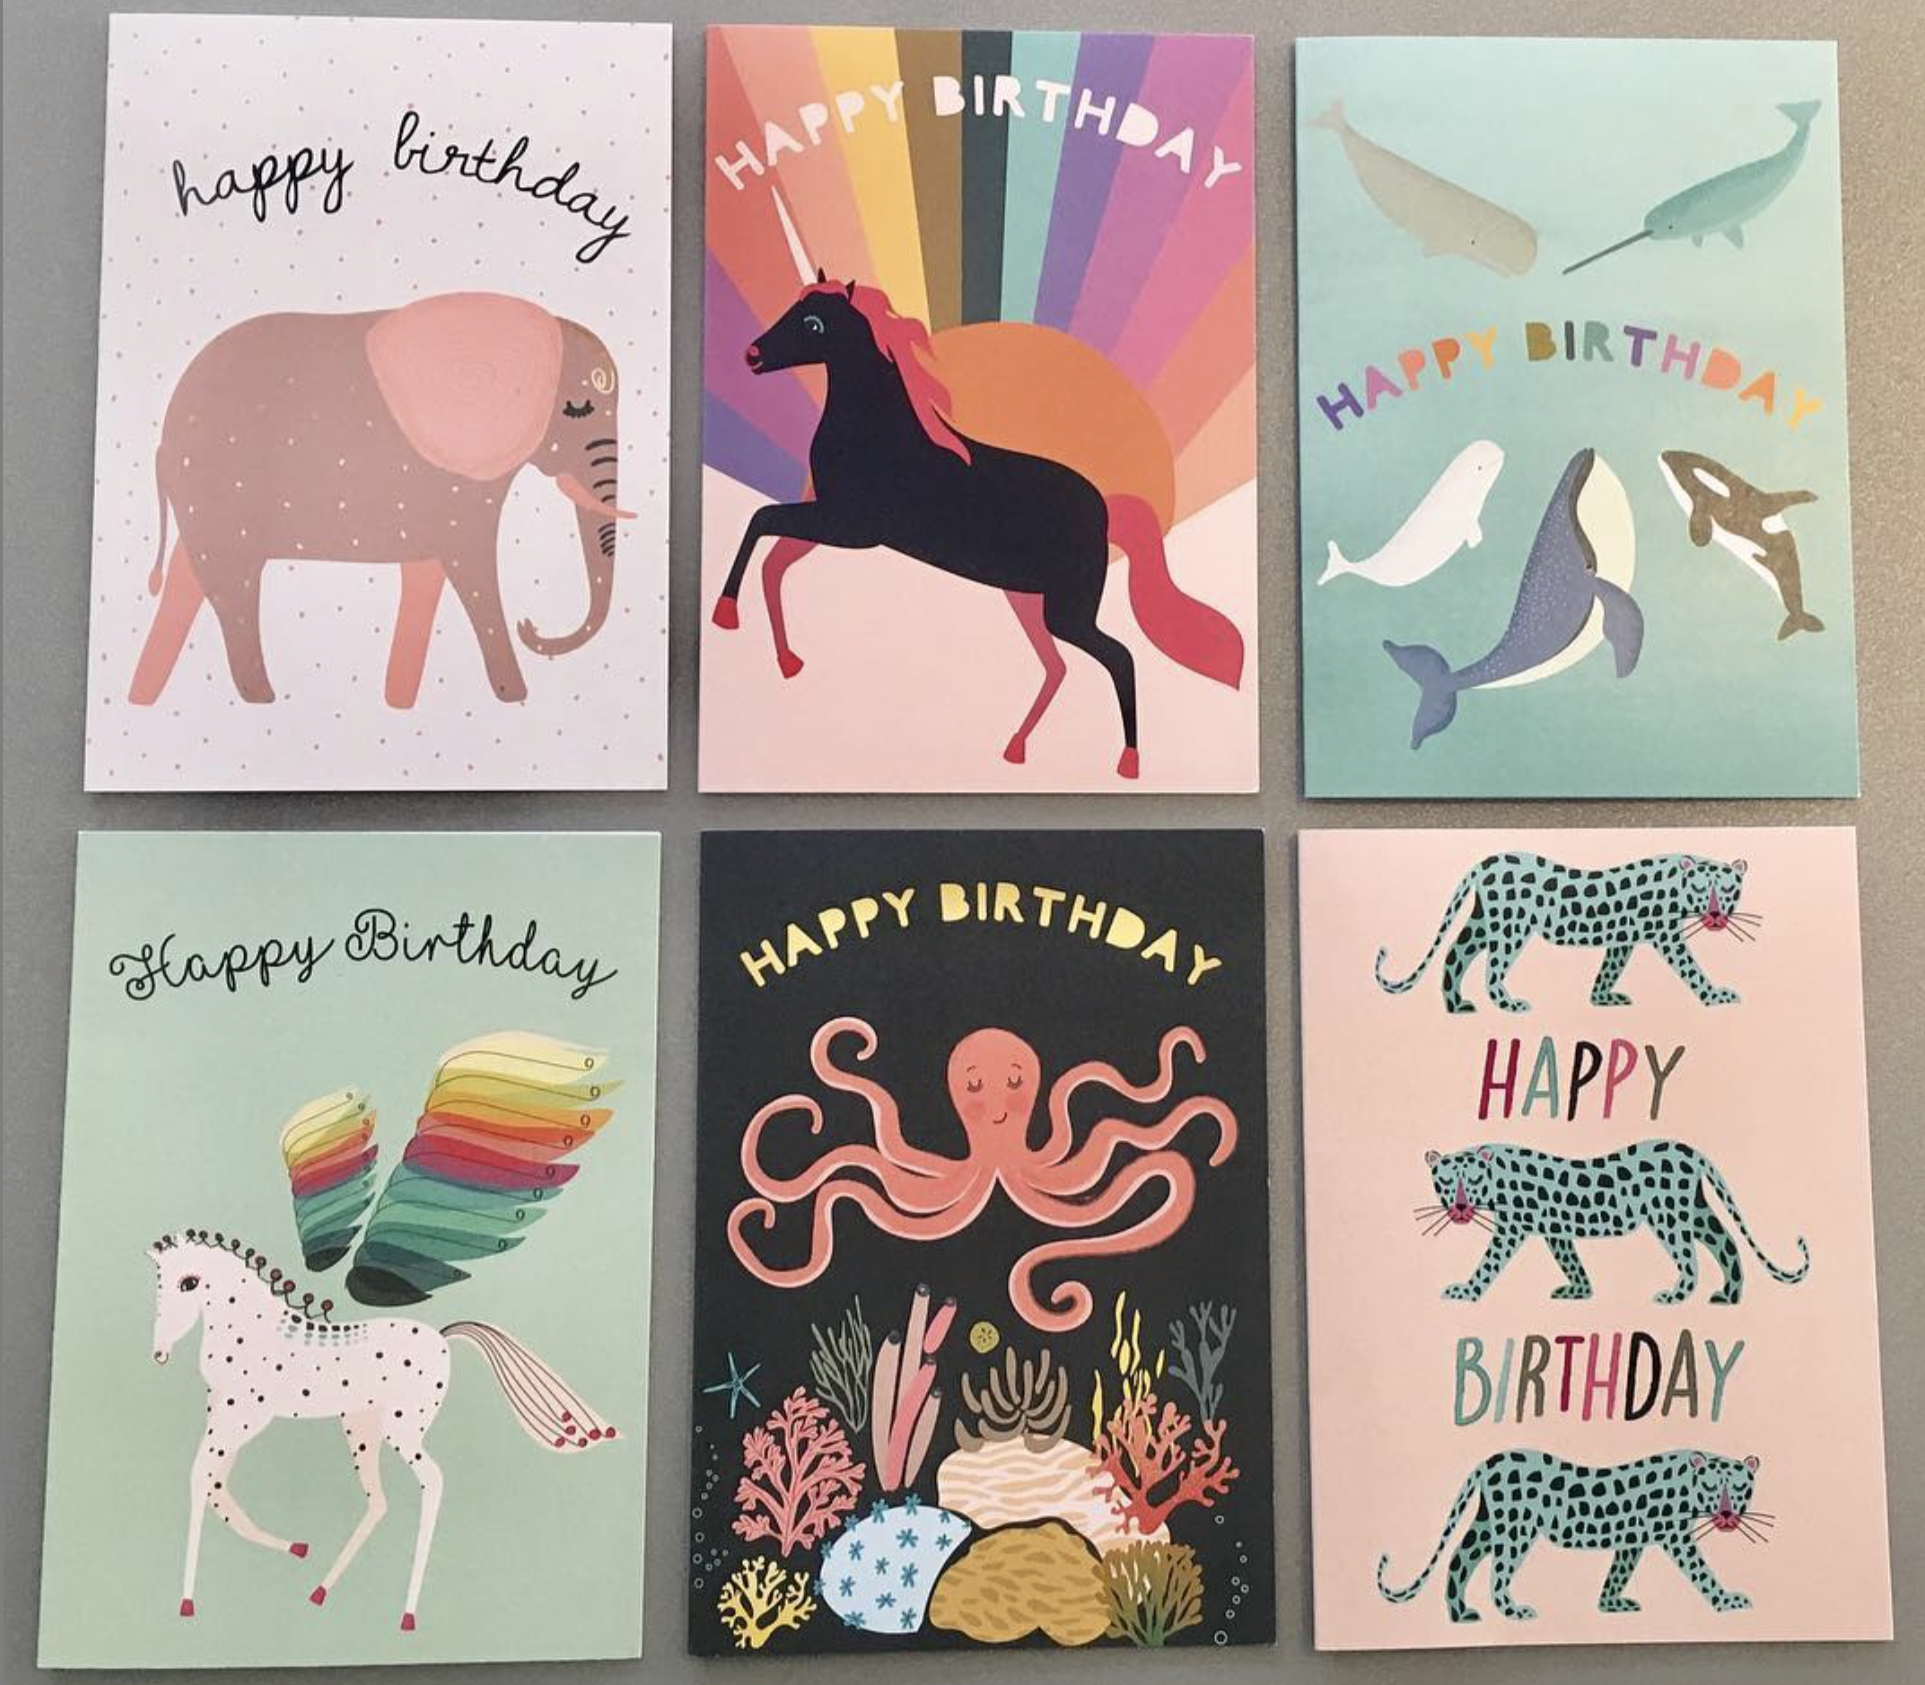 Just some of the greetings cards designs available.